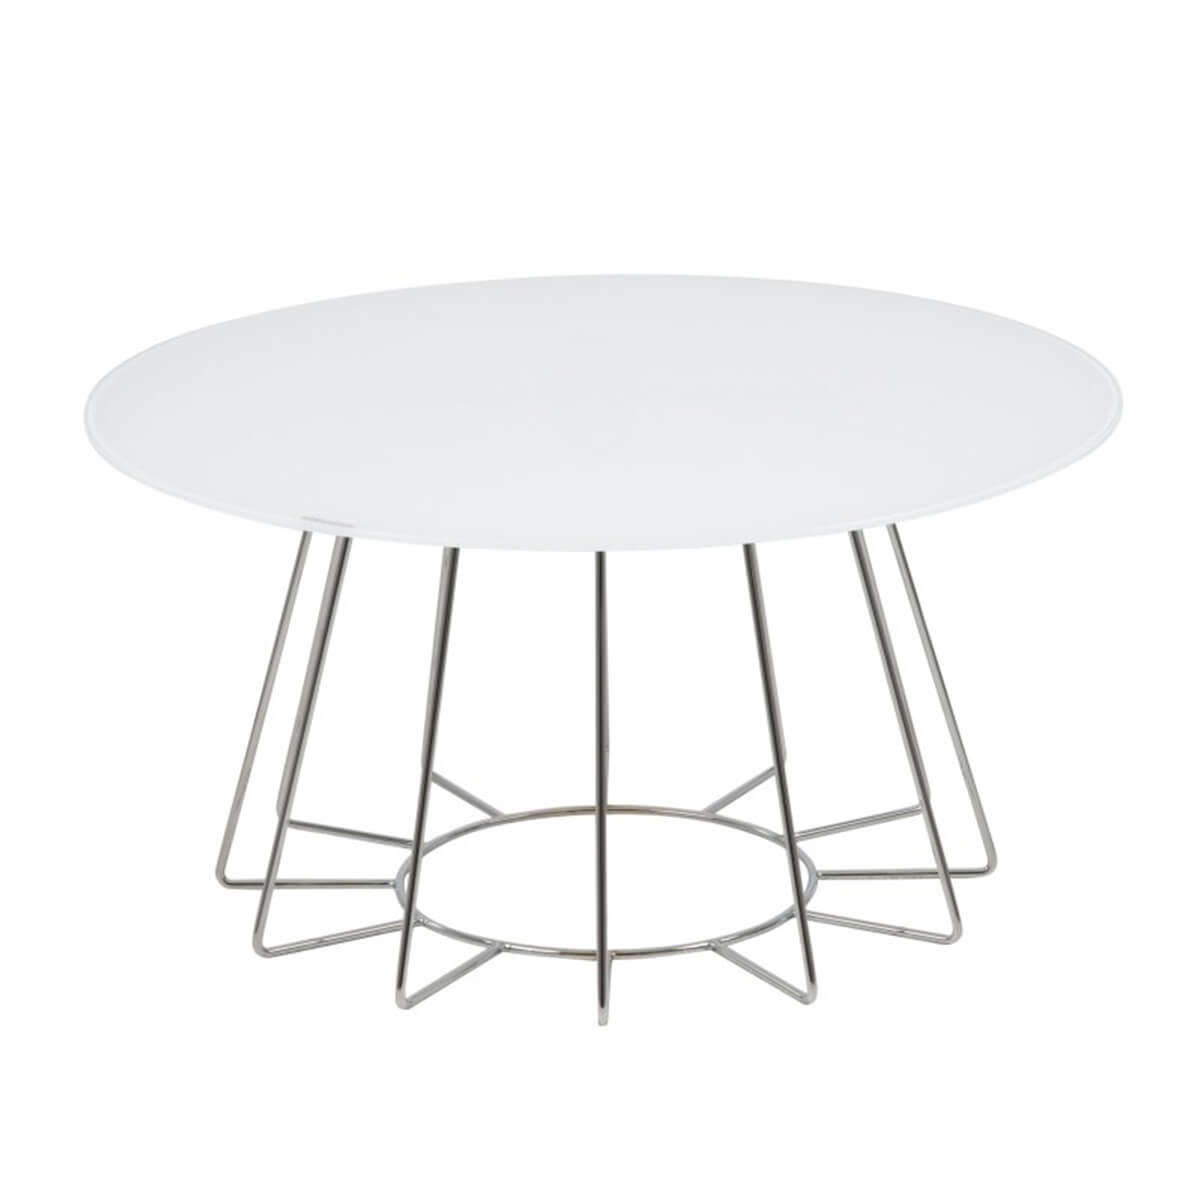 Casia White Glass Coffee Table